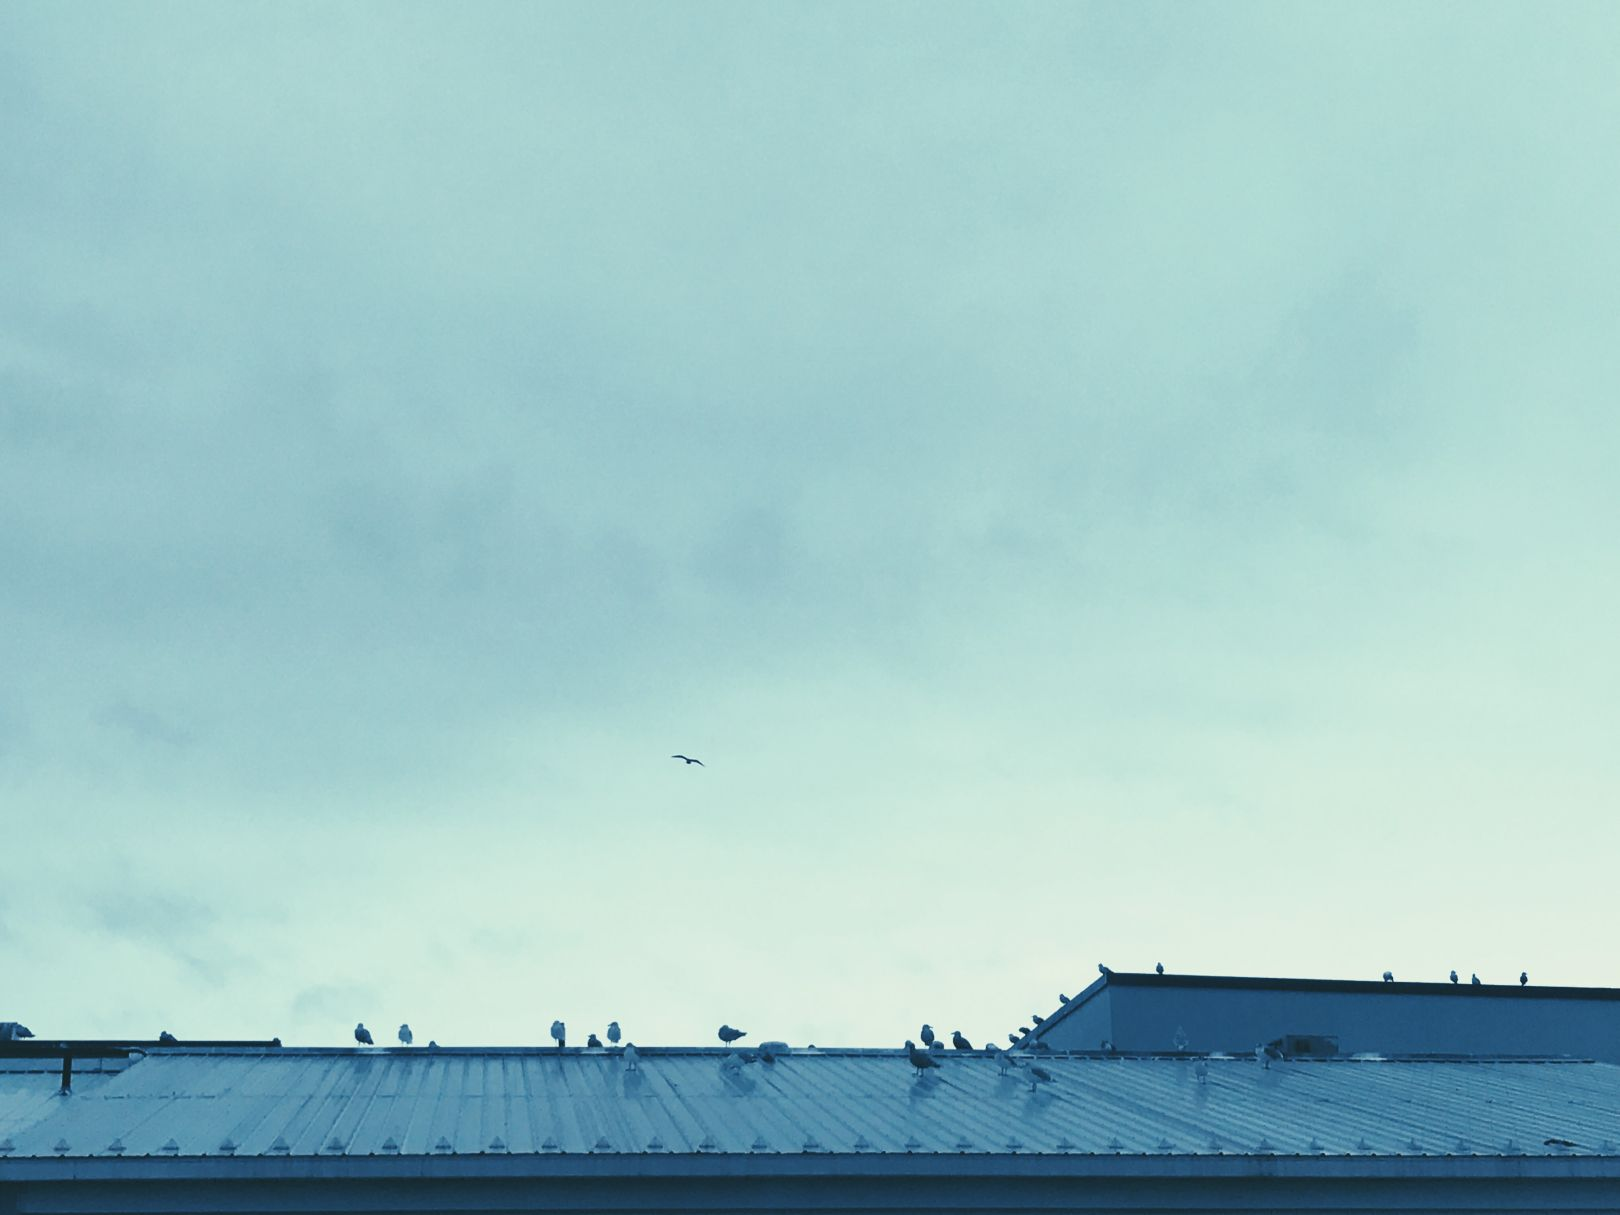 A photo depicting A flock of birds resting on an blue aluminum roof